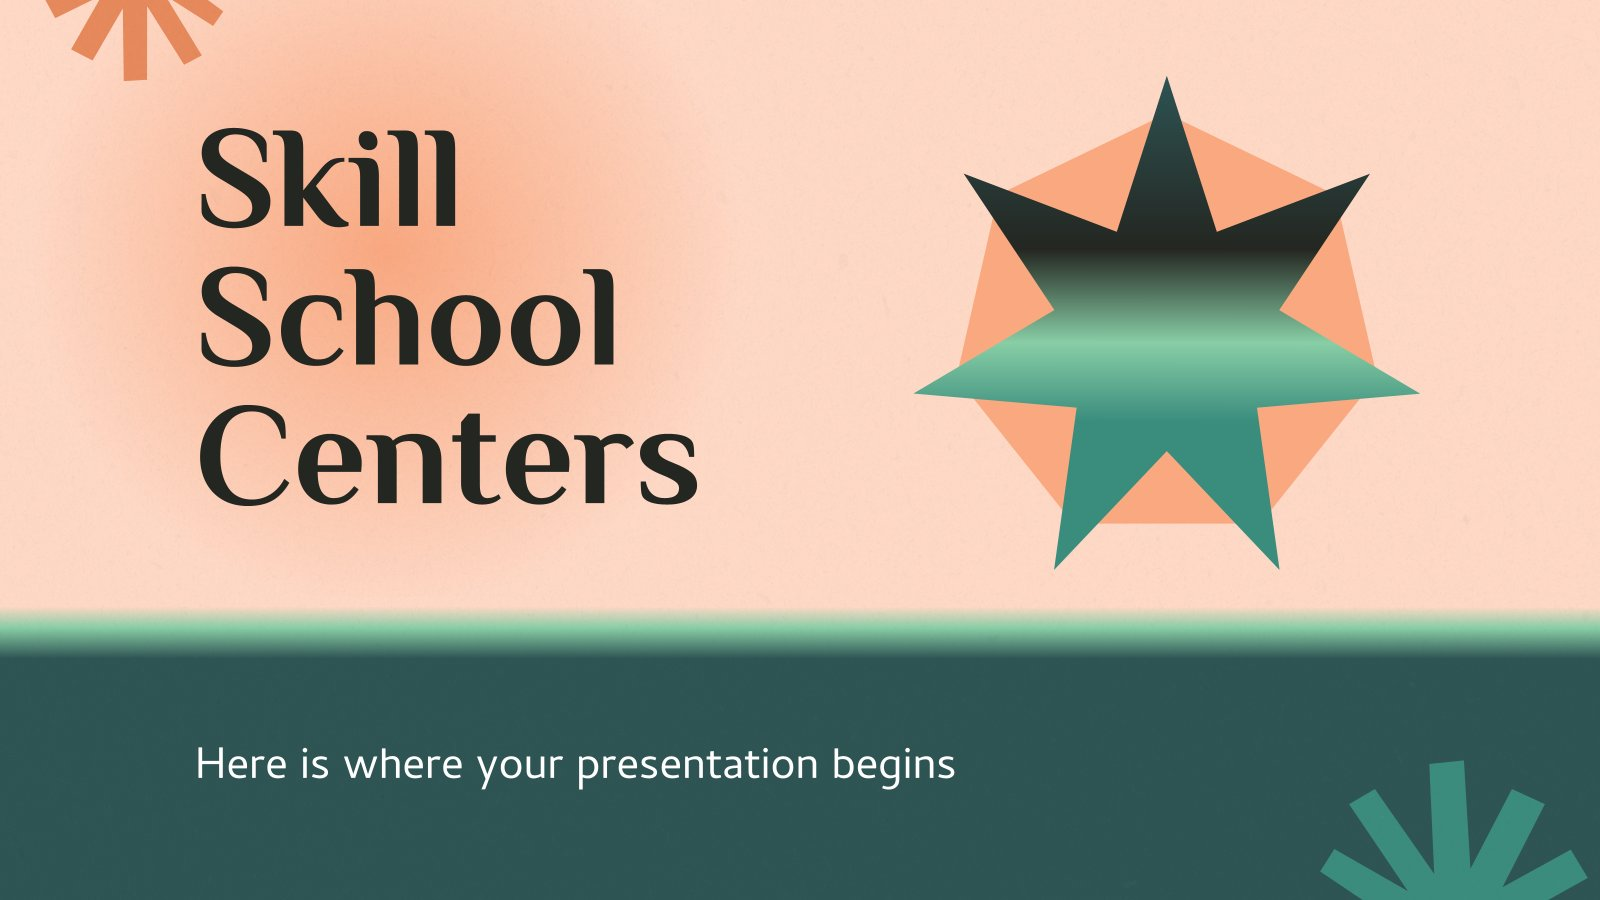 Skill School Centers presentation template